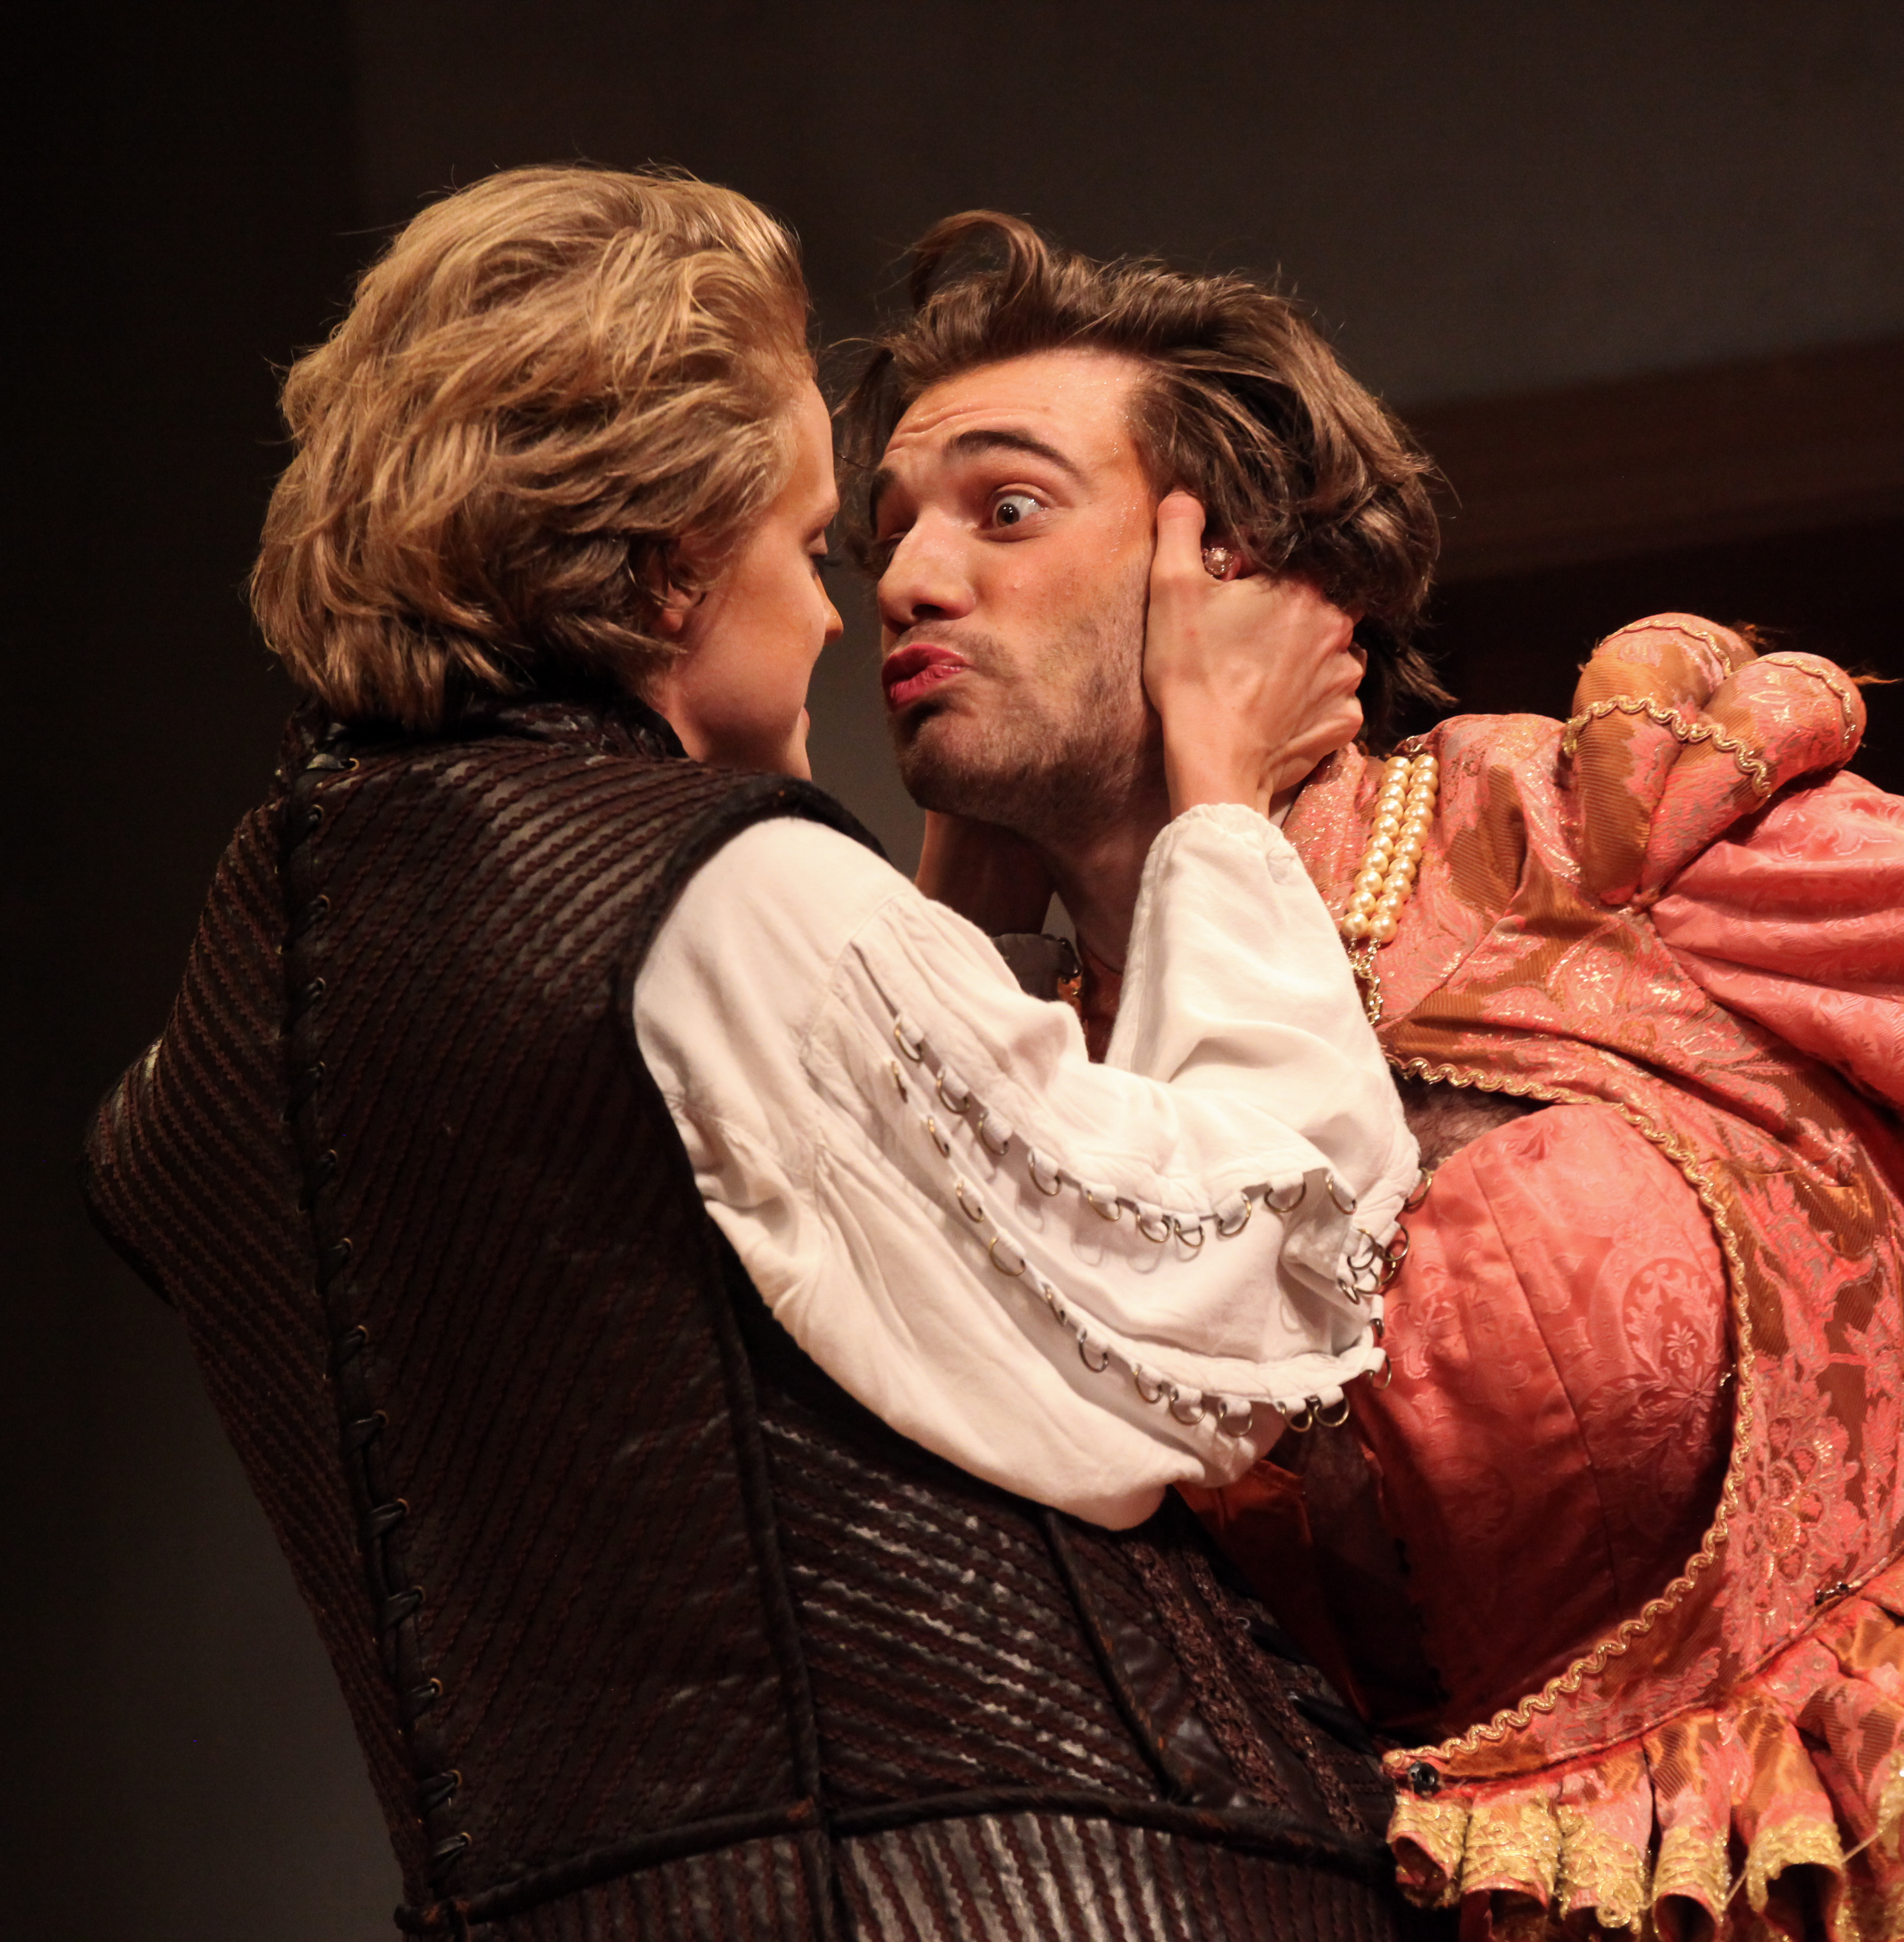 Kate and Petruchio